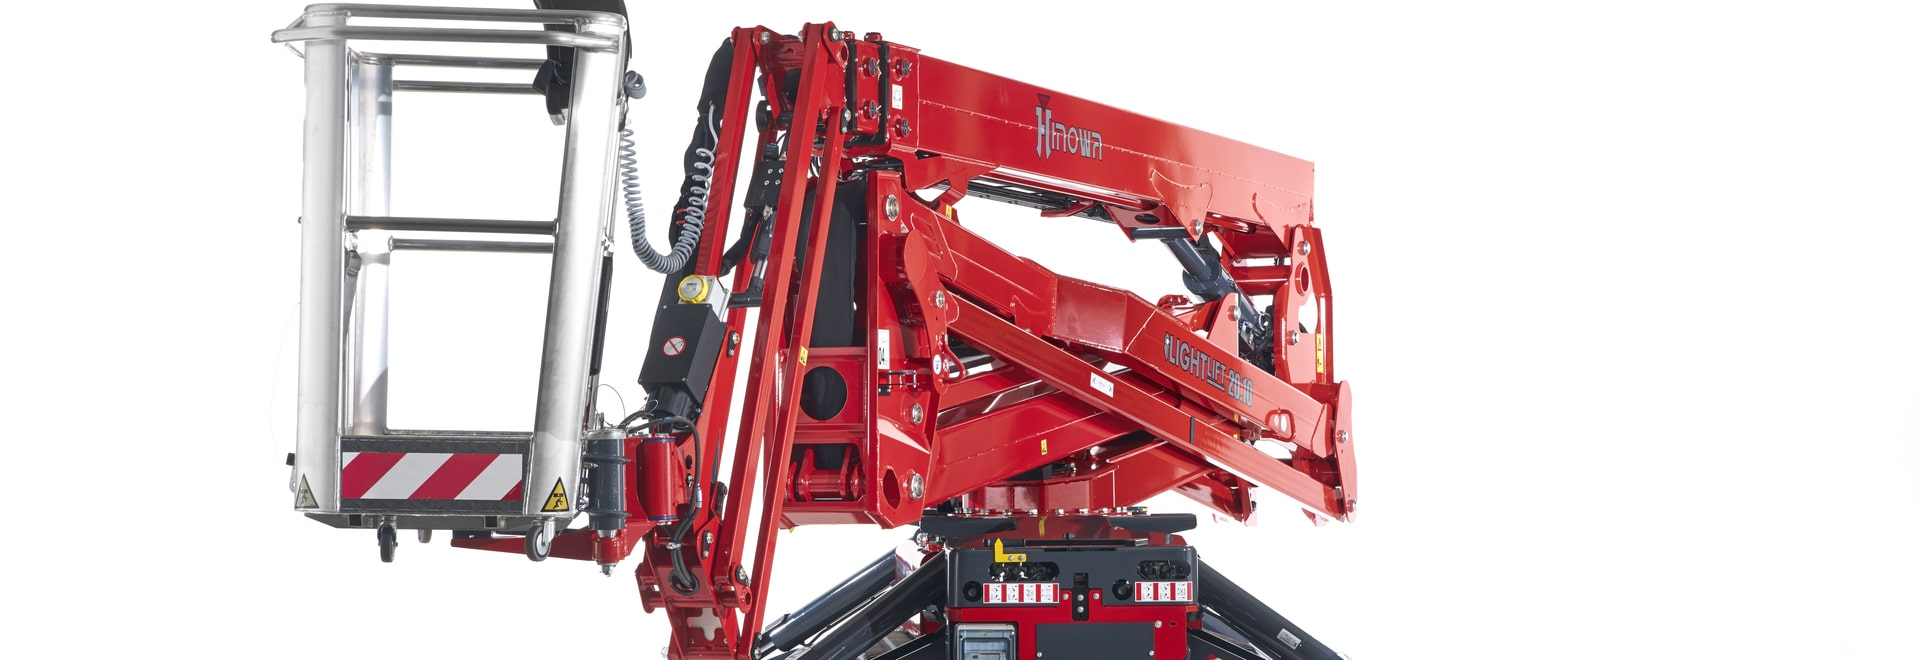 Hinowa introduces the new LightLift MK2 platforms